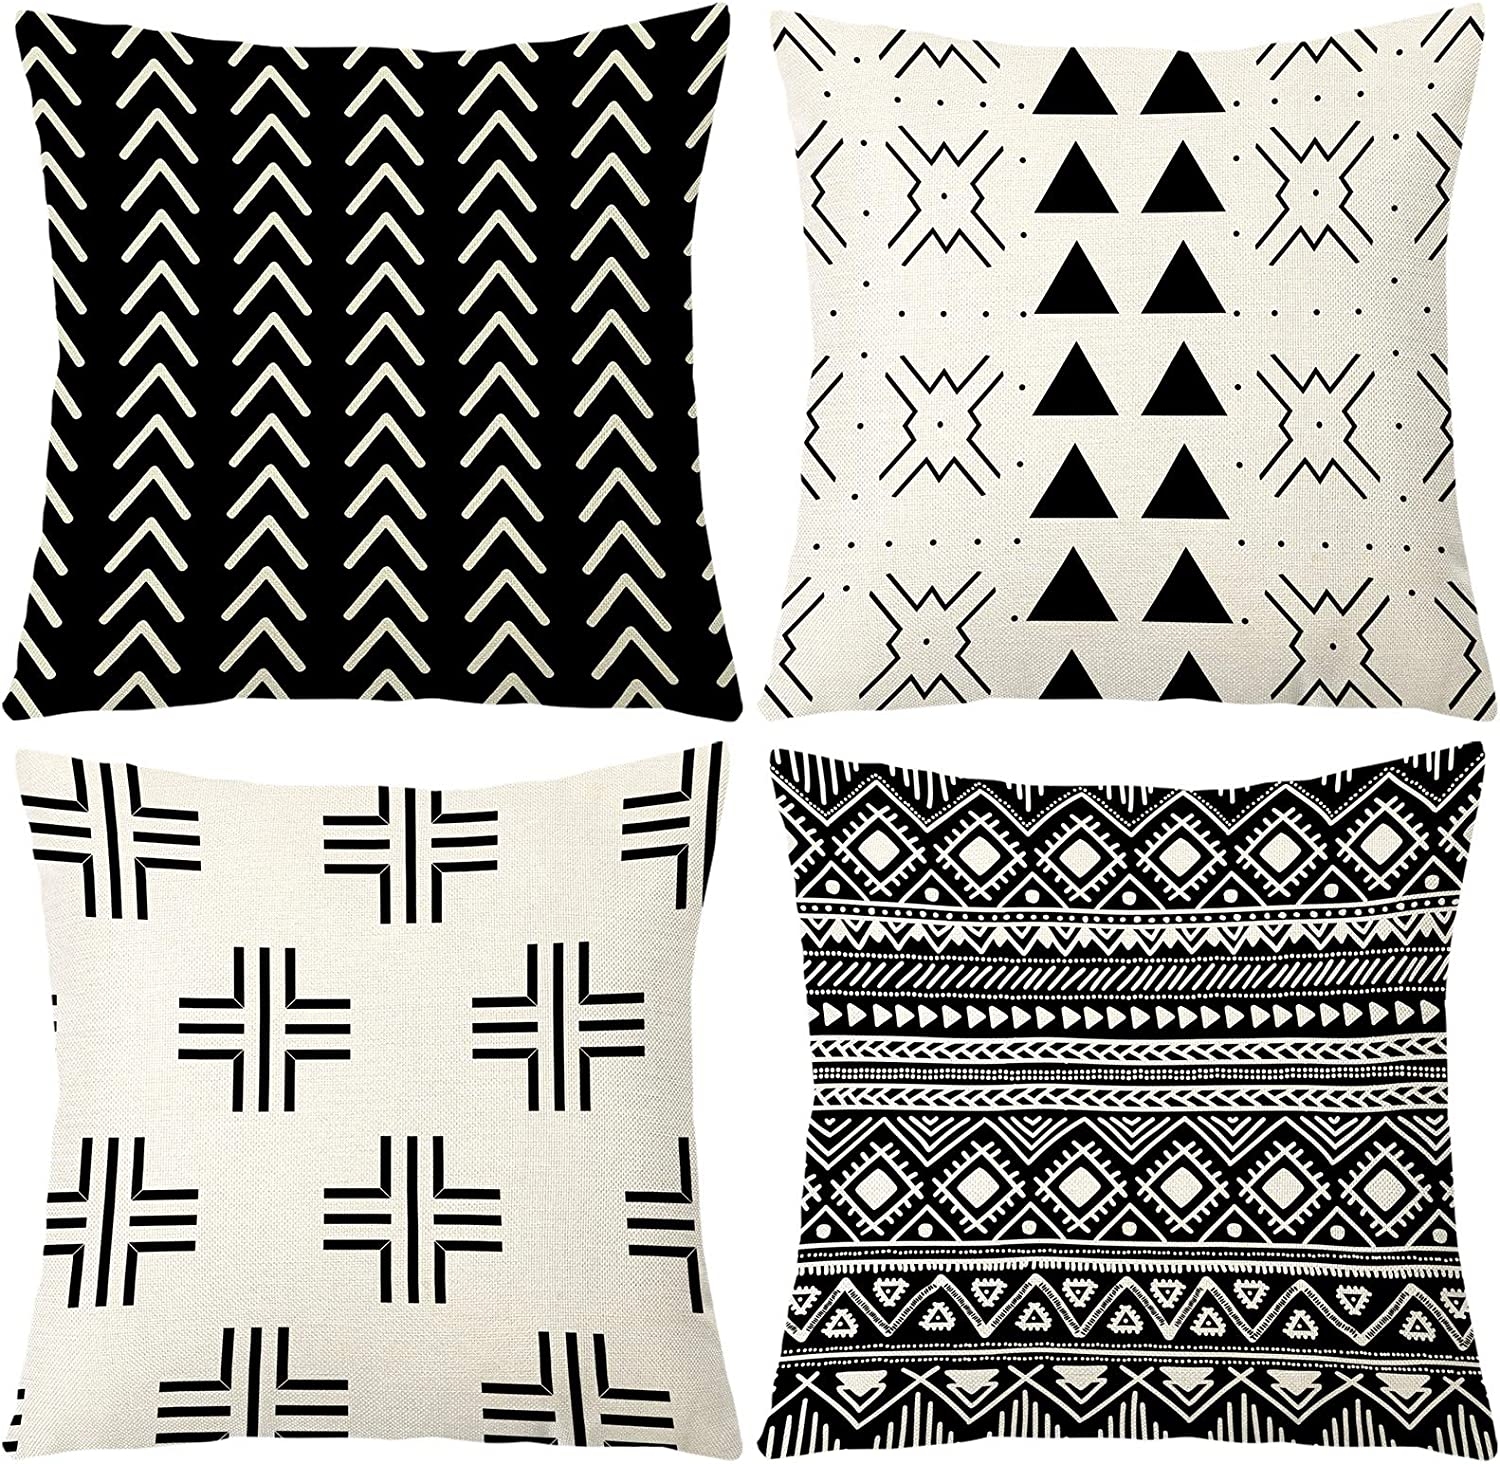 """Aoomzoon Pillow Covers 18x18 Set of 4, Modern Boho Geometric Decorative Throw Pillow Covers, Cotton Linen Home Decor Cushion Cover for Couch Sofa Living Room Outdoor Car (18""""x18"""", Black)"""